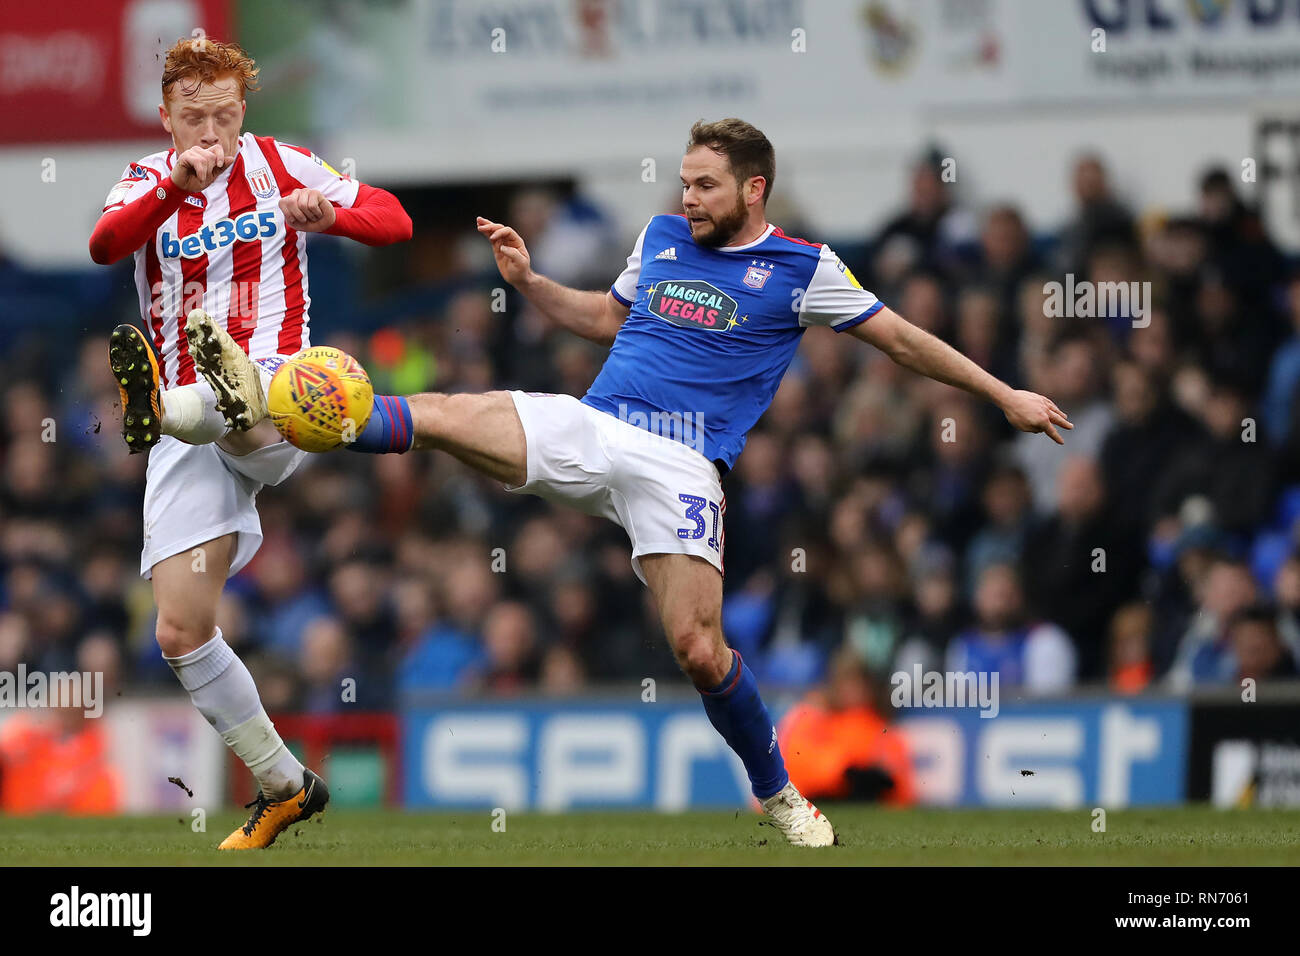 - Ipswich Town v Stoke City, Sky Bet Championship, Portman Road, Ipswich - 16th February 2019  Editorial Use Only - DataCo restrictions apply - Stock Image